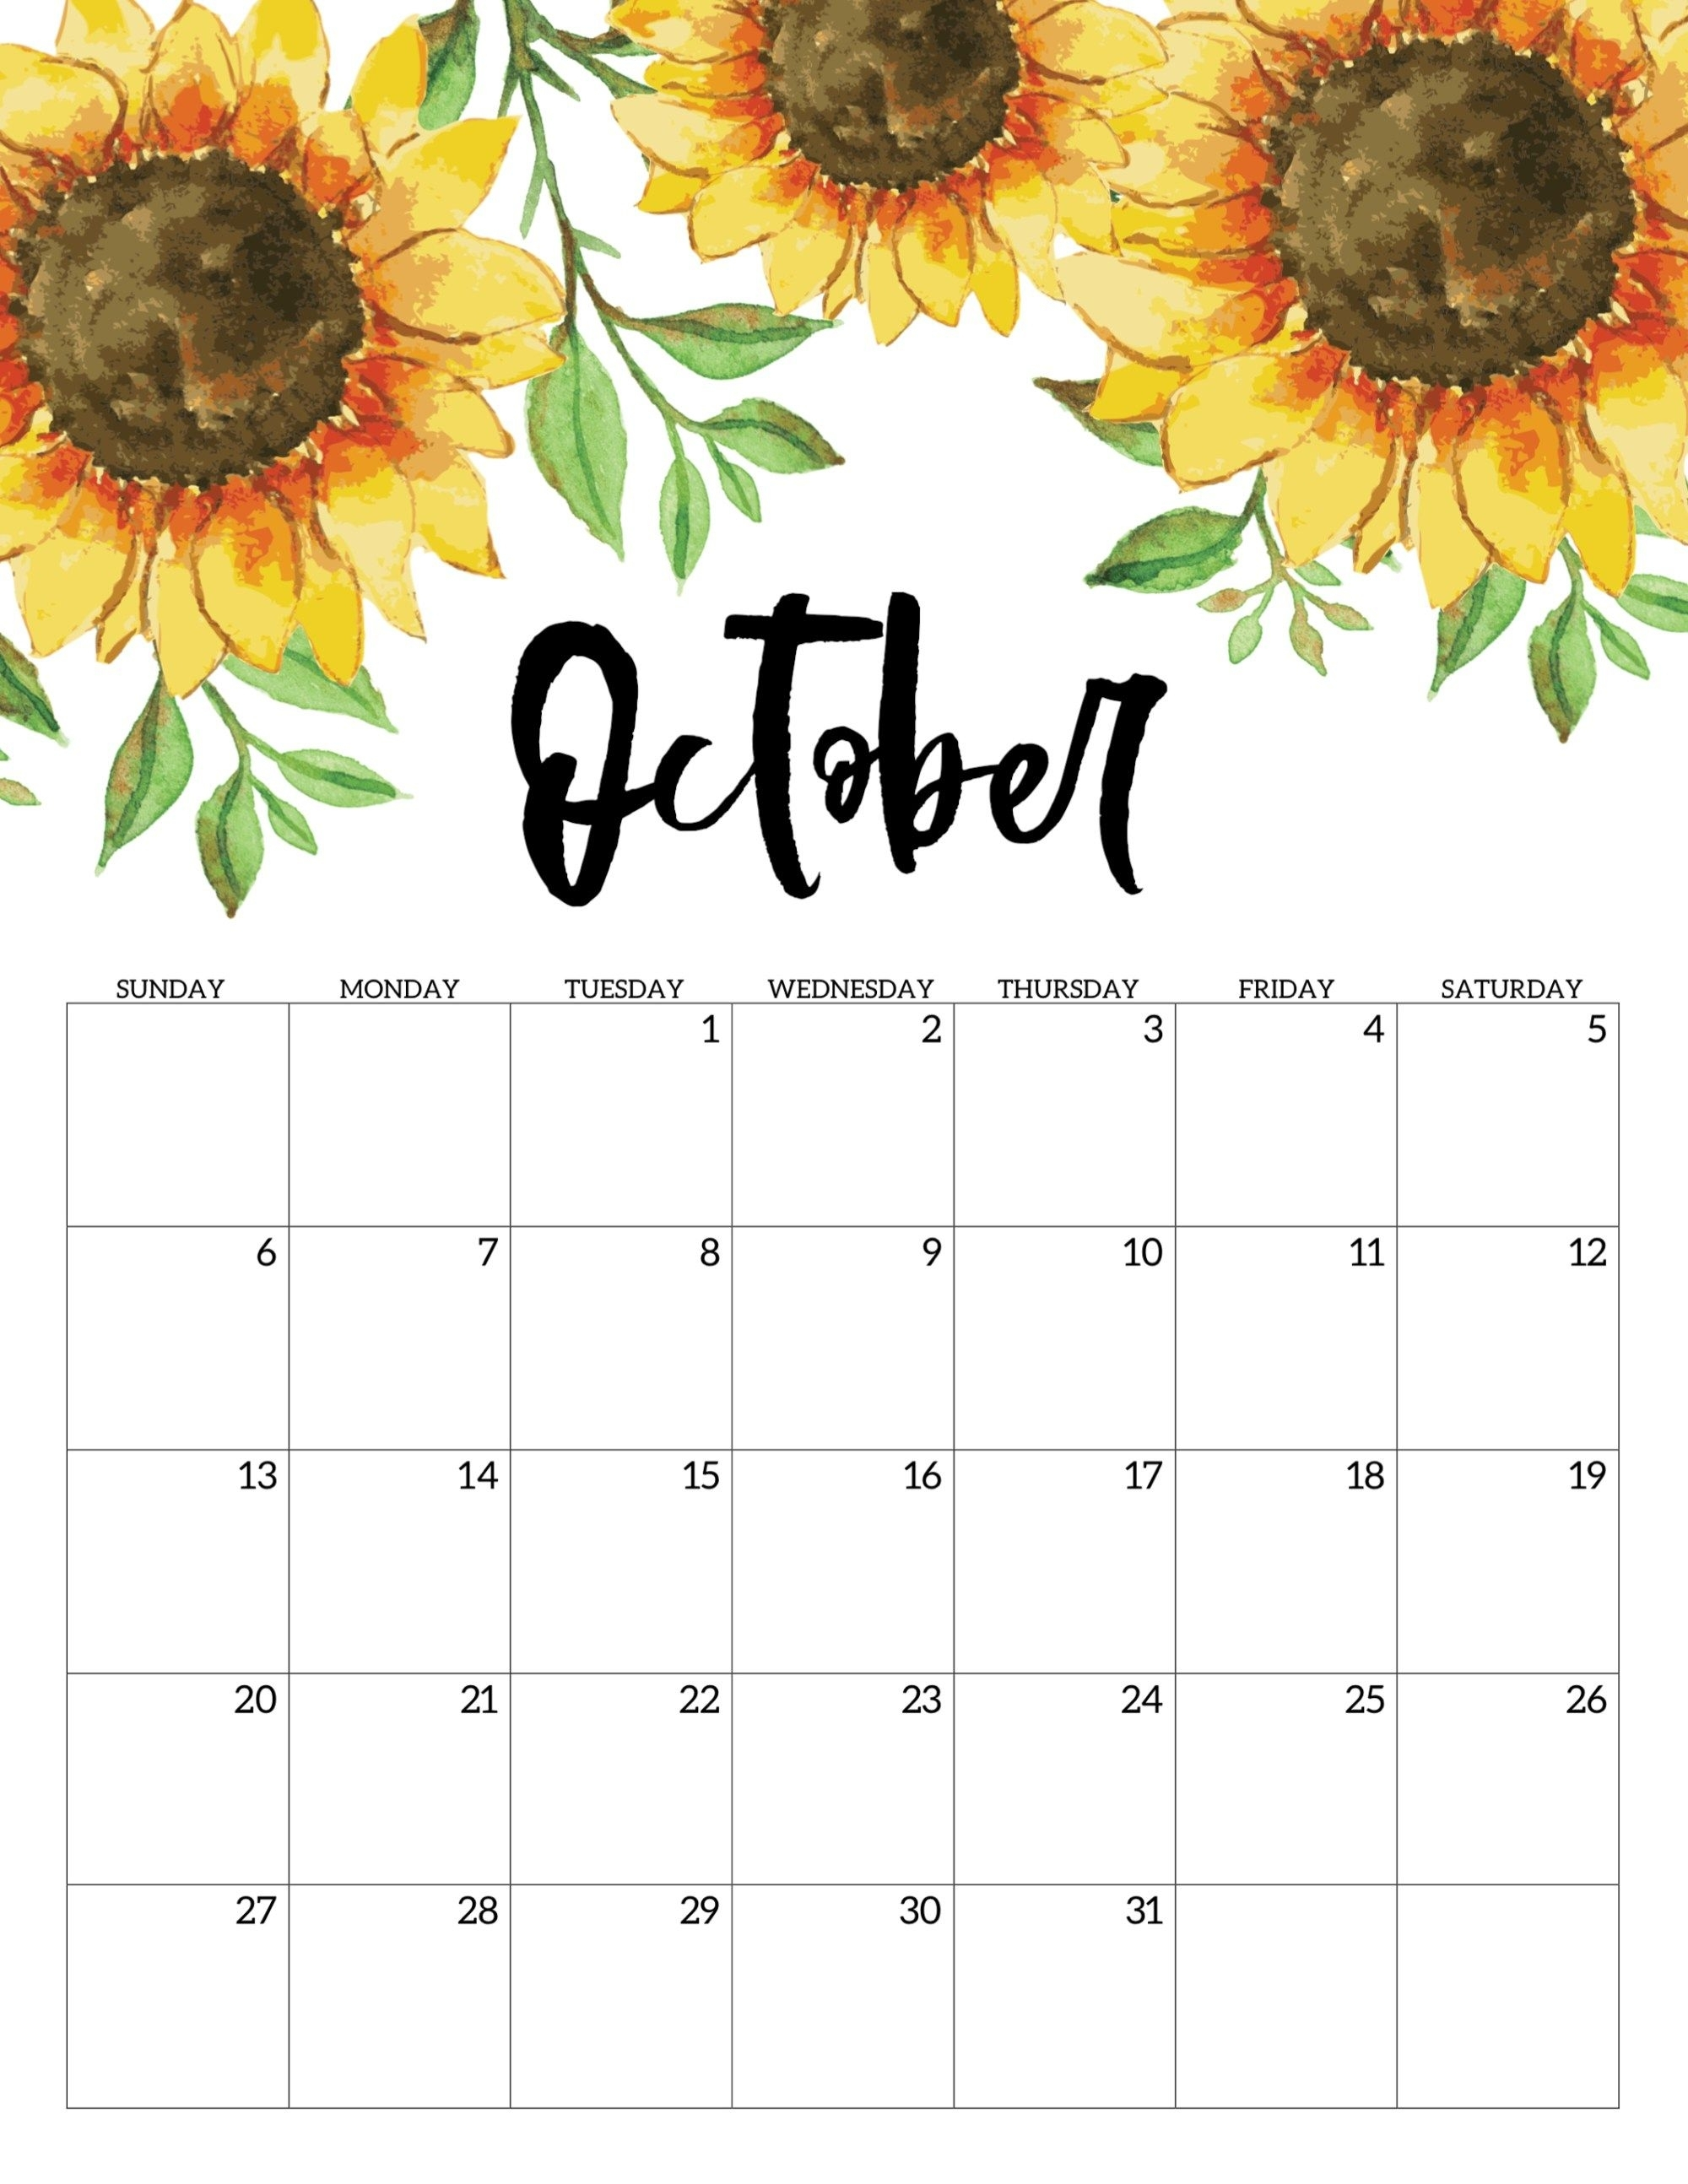 Free Printable Calendar 2019 - Floral | Calendar | Calendar 2019 for Homeschool Year At A Glance 2019-2020 Botanical Calendar Printable Free